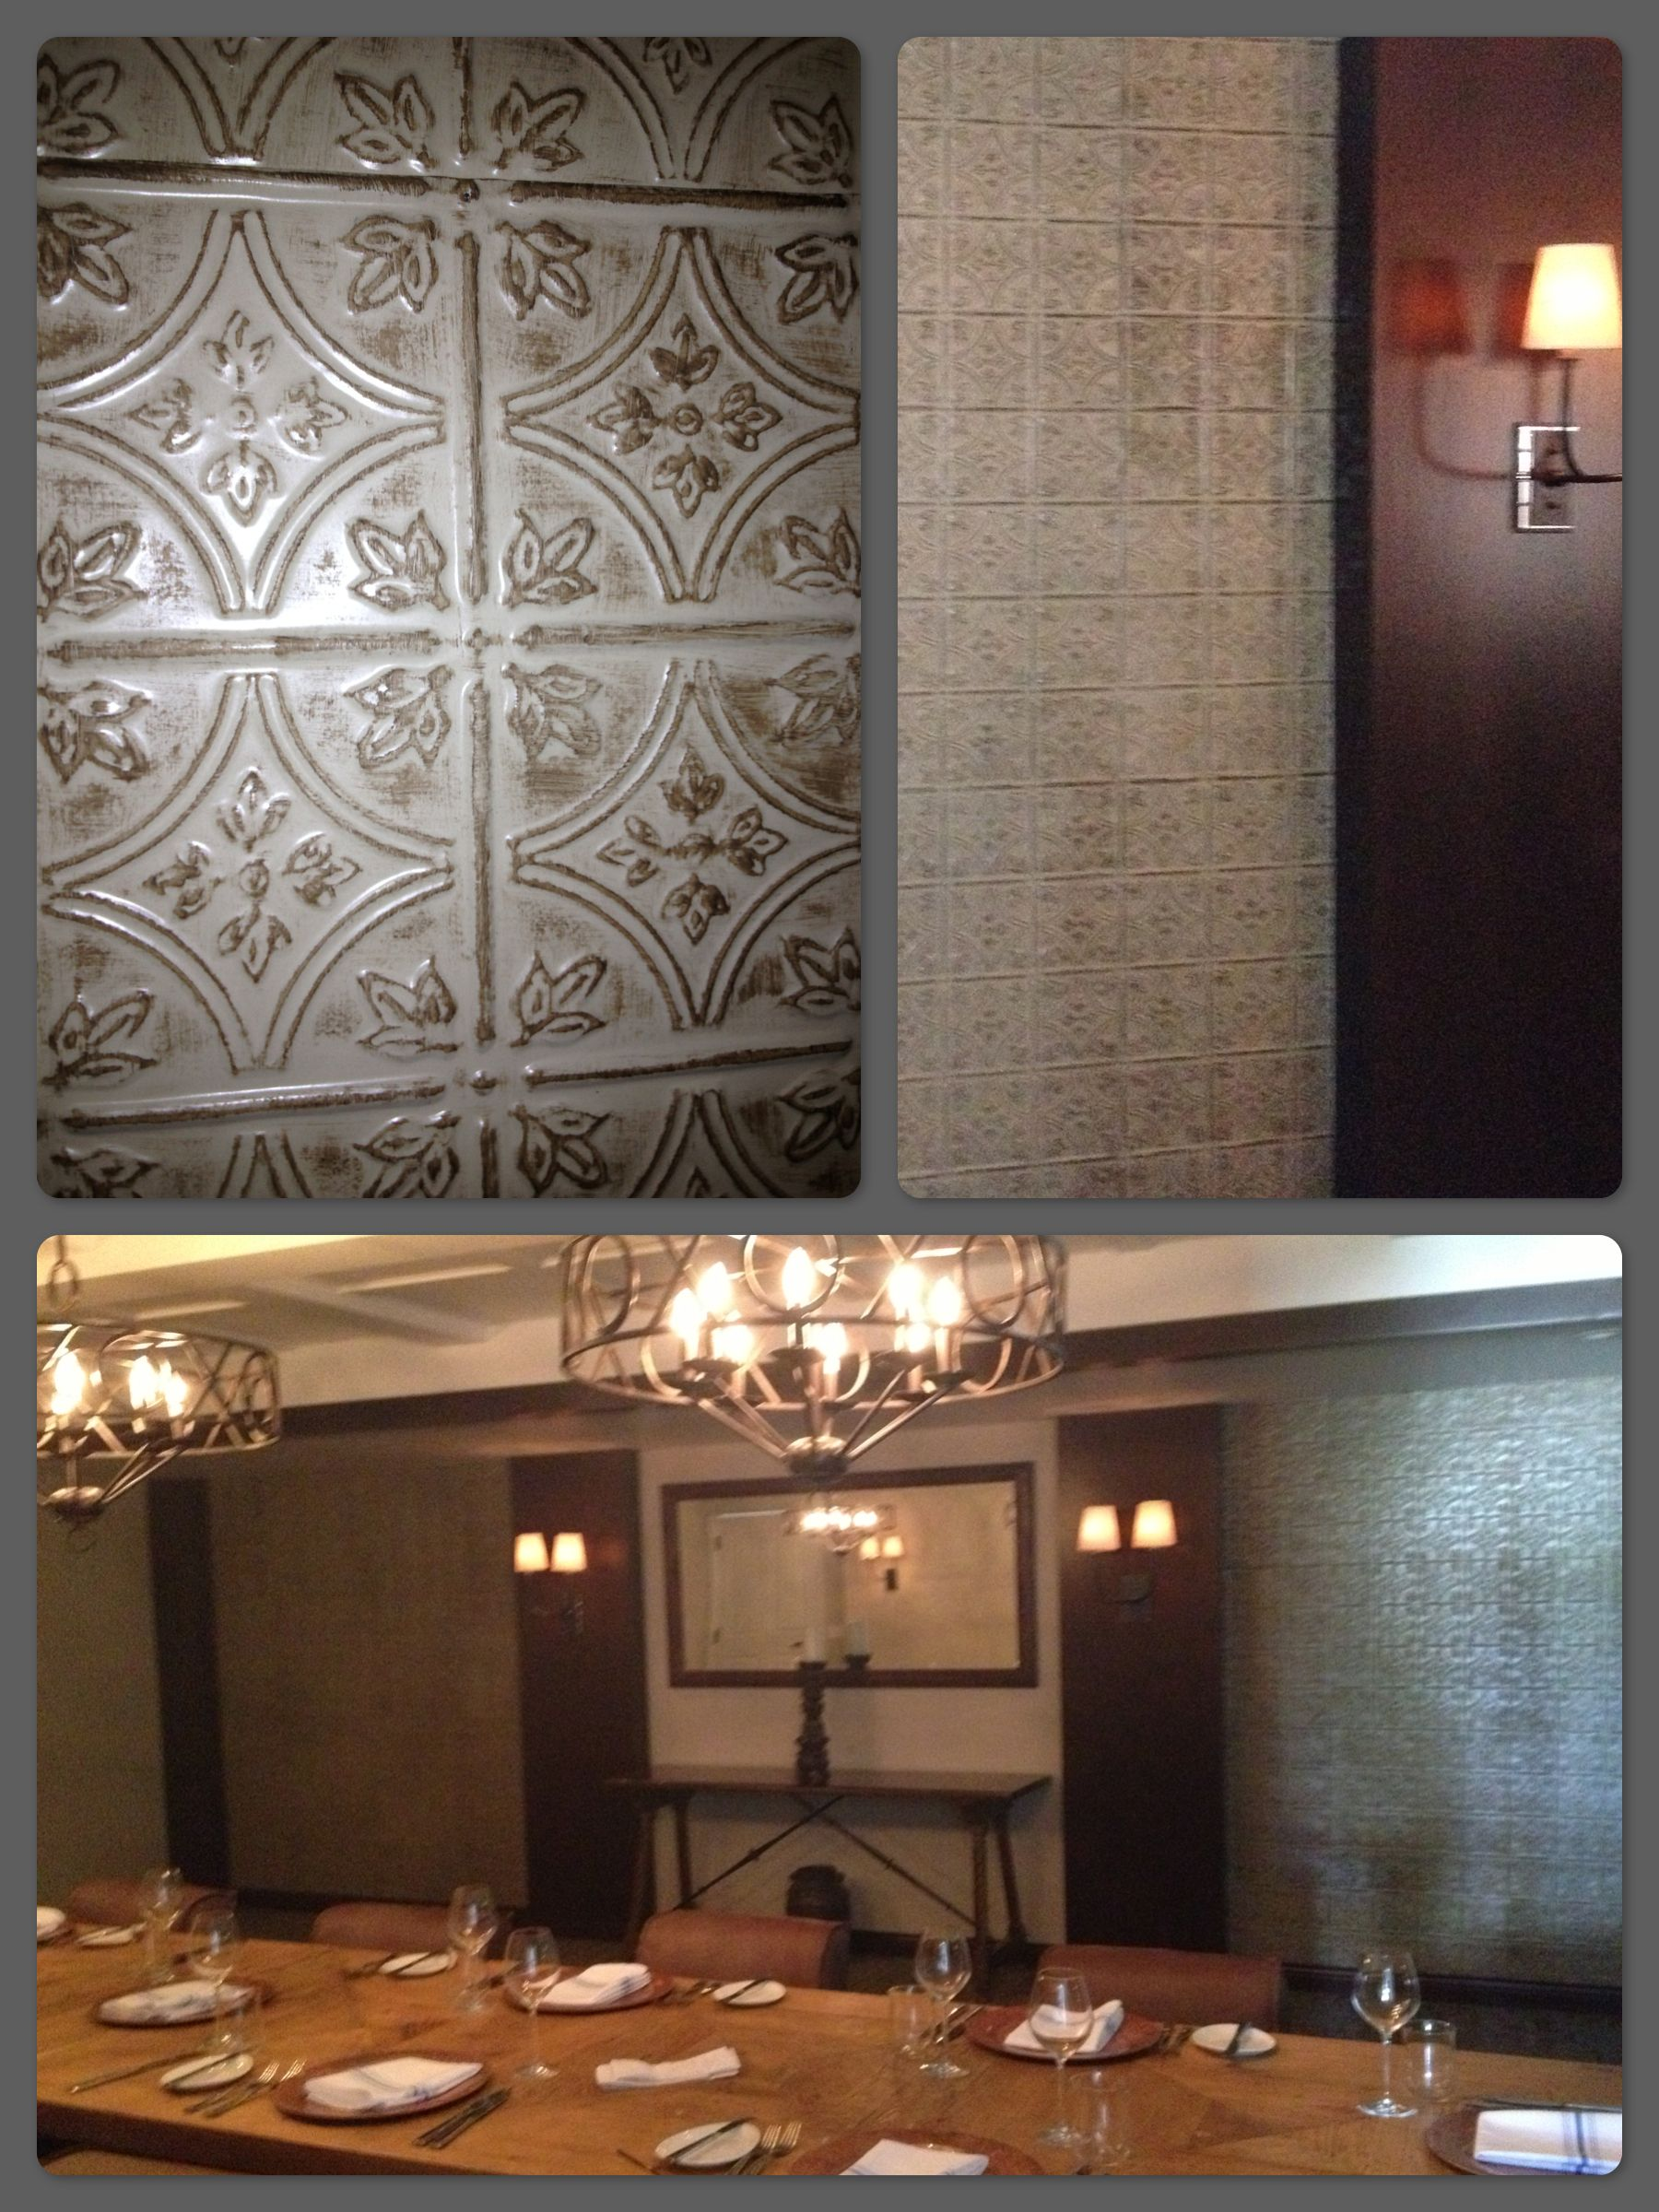 Decorative Wall Tiles For Bathroom The Inn At Rancho Santa Fe Faux Tin Decorative Tile Walls  For